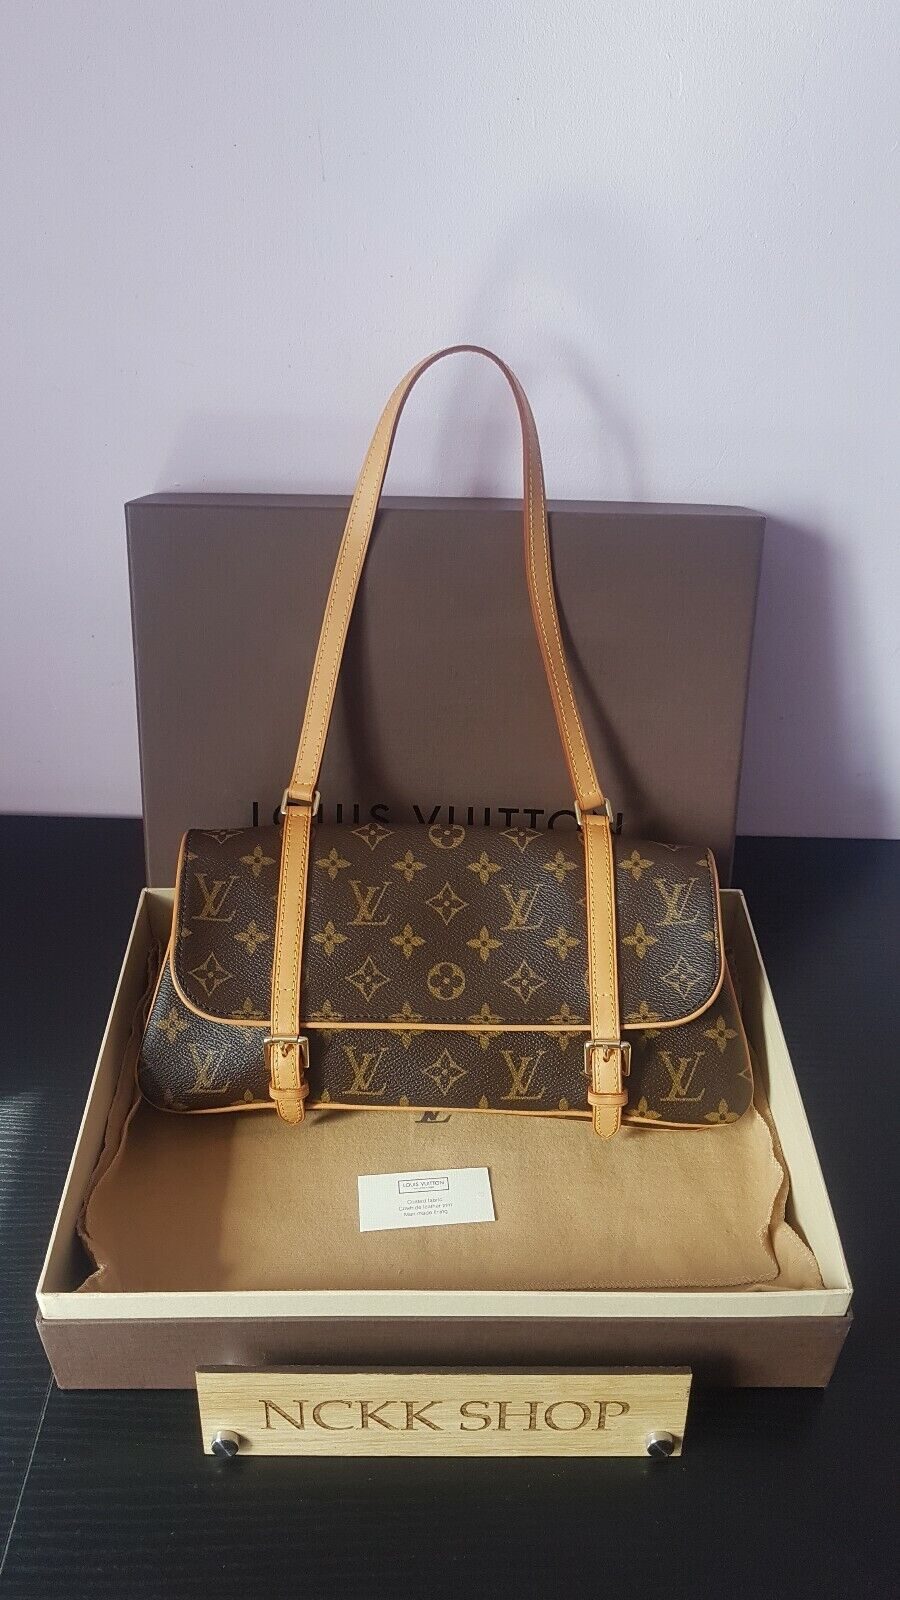 Authentic Louis Vuitton Marelle Monogram Canvas Schultertasche - 605.07,Kaufpreis 605,07,datum 01.07.2020 22:12:38,Website ebay.de